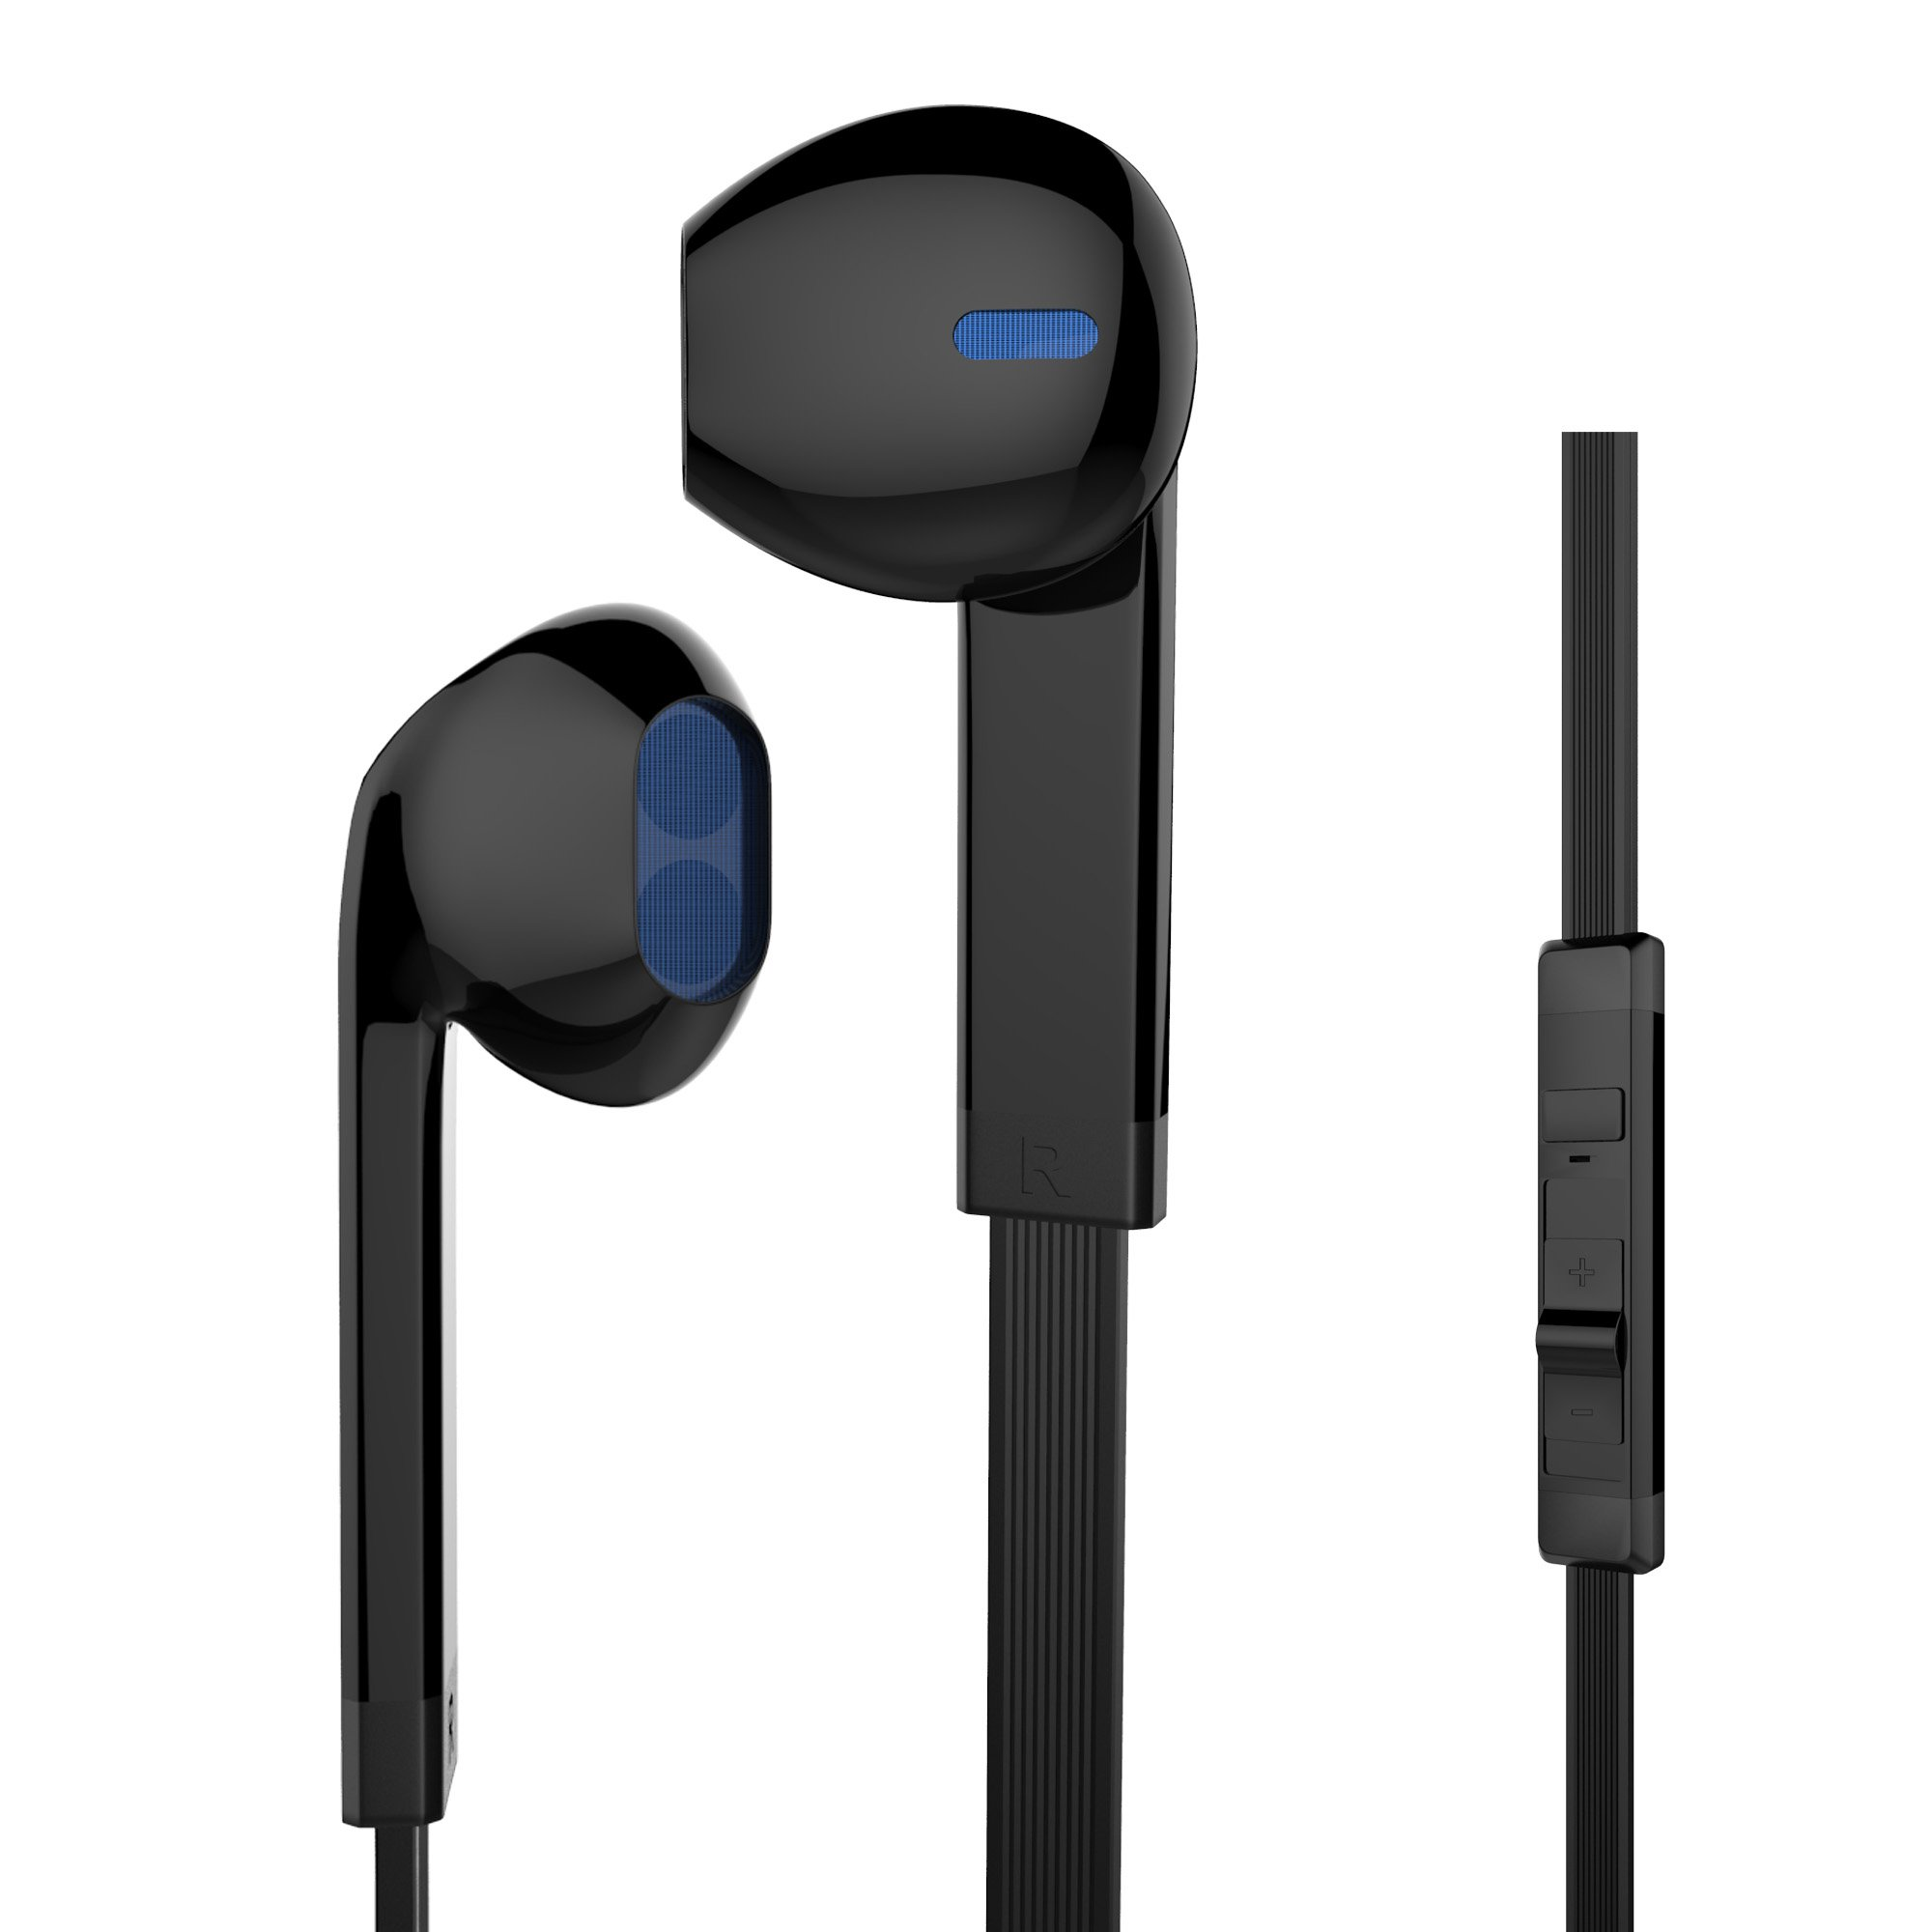 MXditect EB166 Headphones with Mic Stereo Earphones for iOS Android Windows System, Black